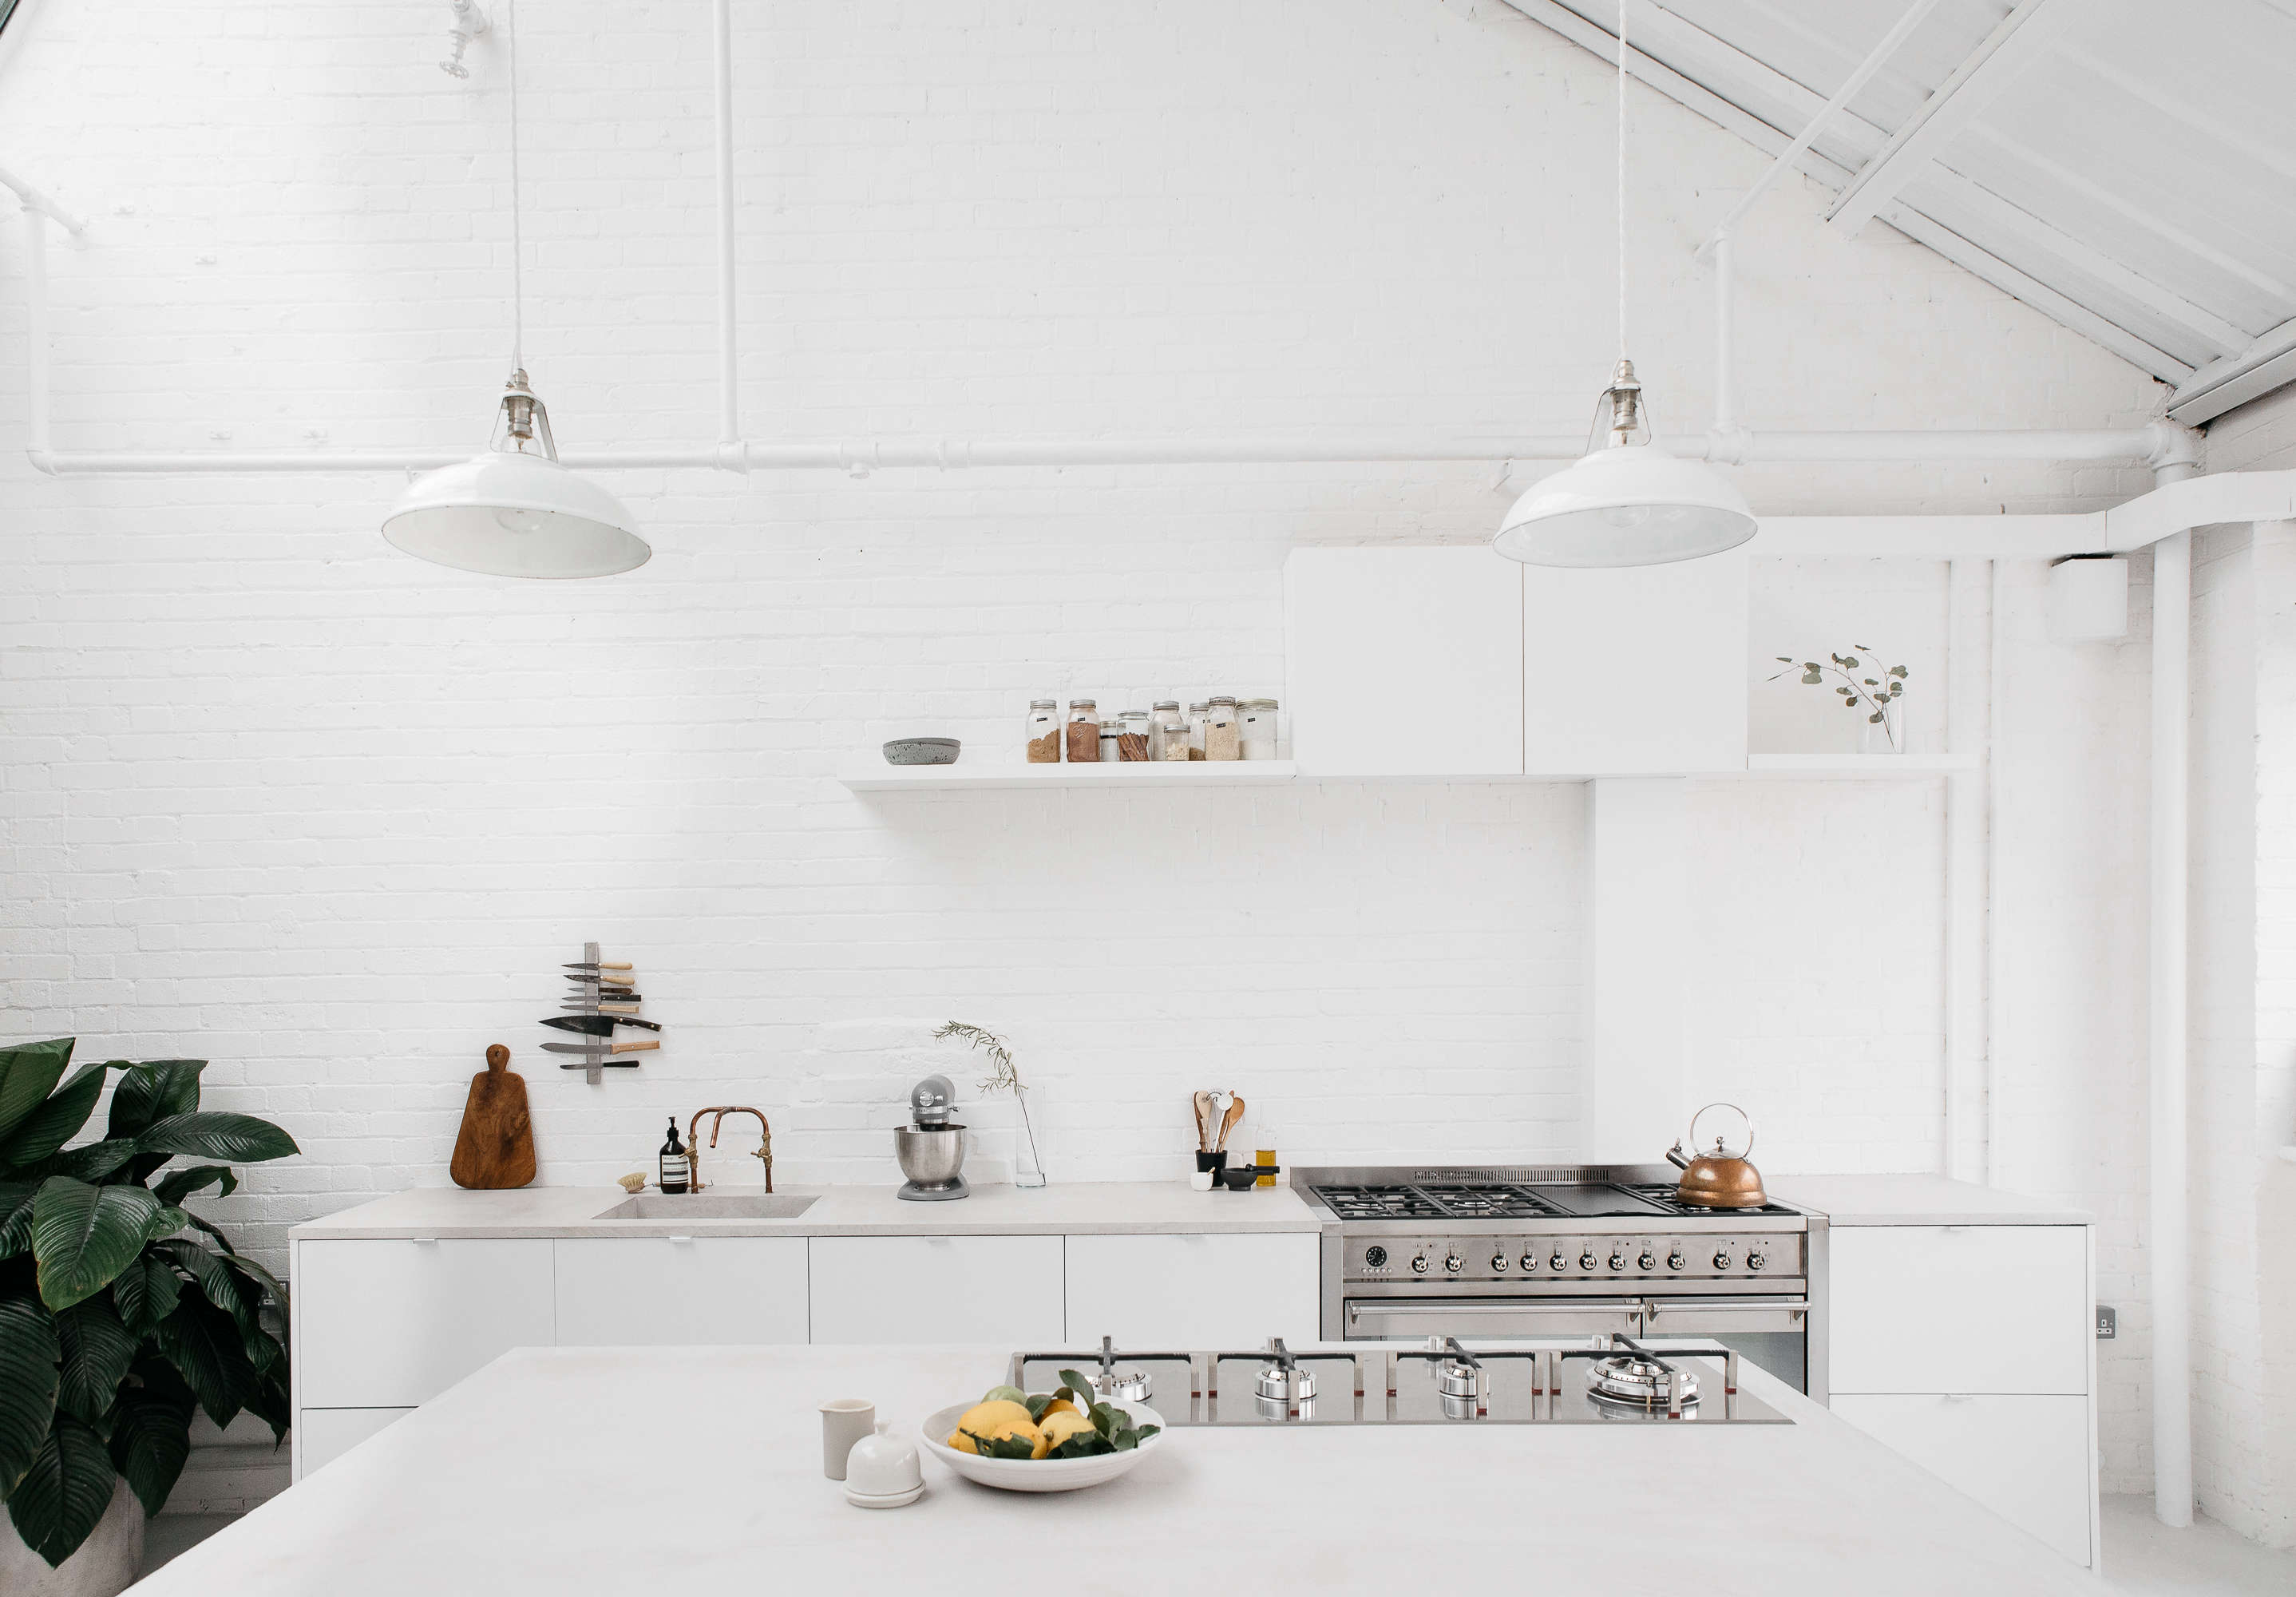 Steal This Look: All White Industrial Kitchen In London, Ikea Hacks Included